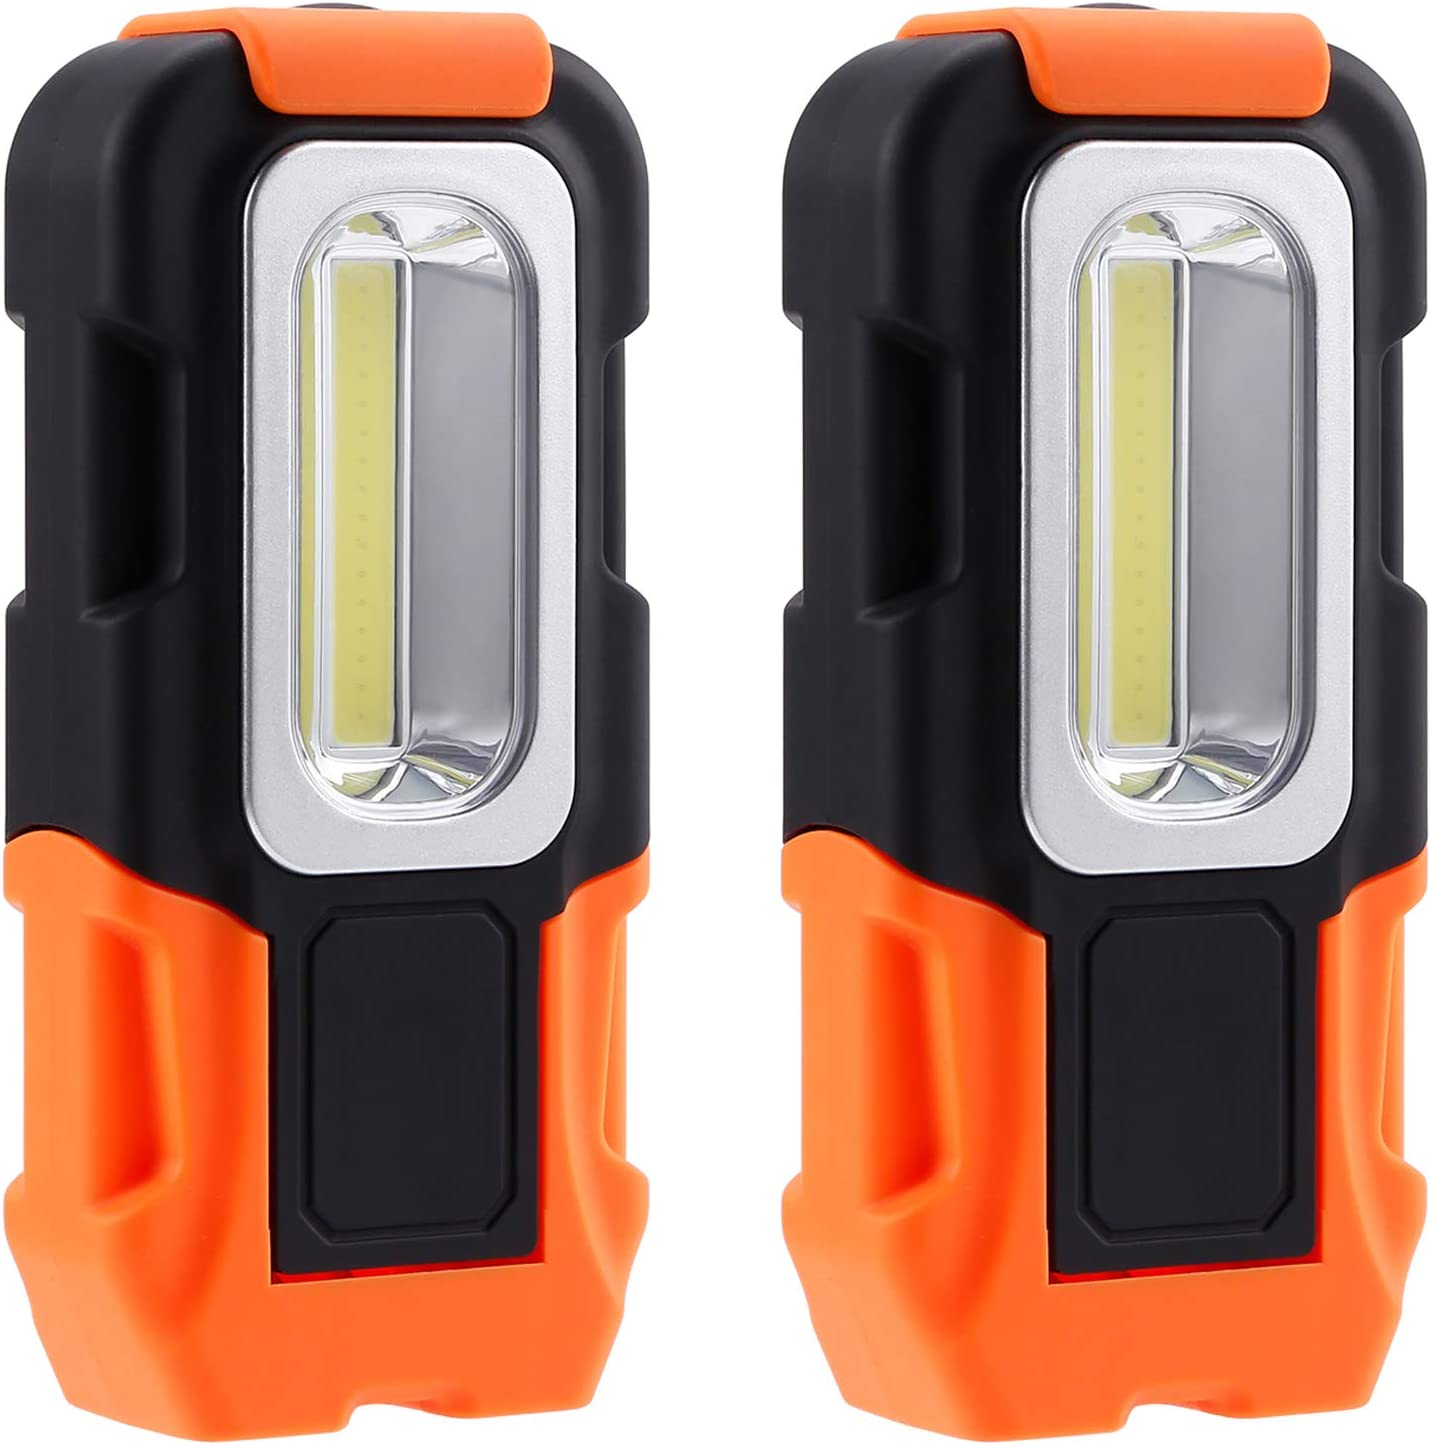 LED Flashlight Worklight Lamp Portable w// Magnetic Hook Outdoor Hiking Camping